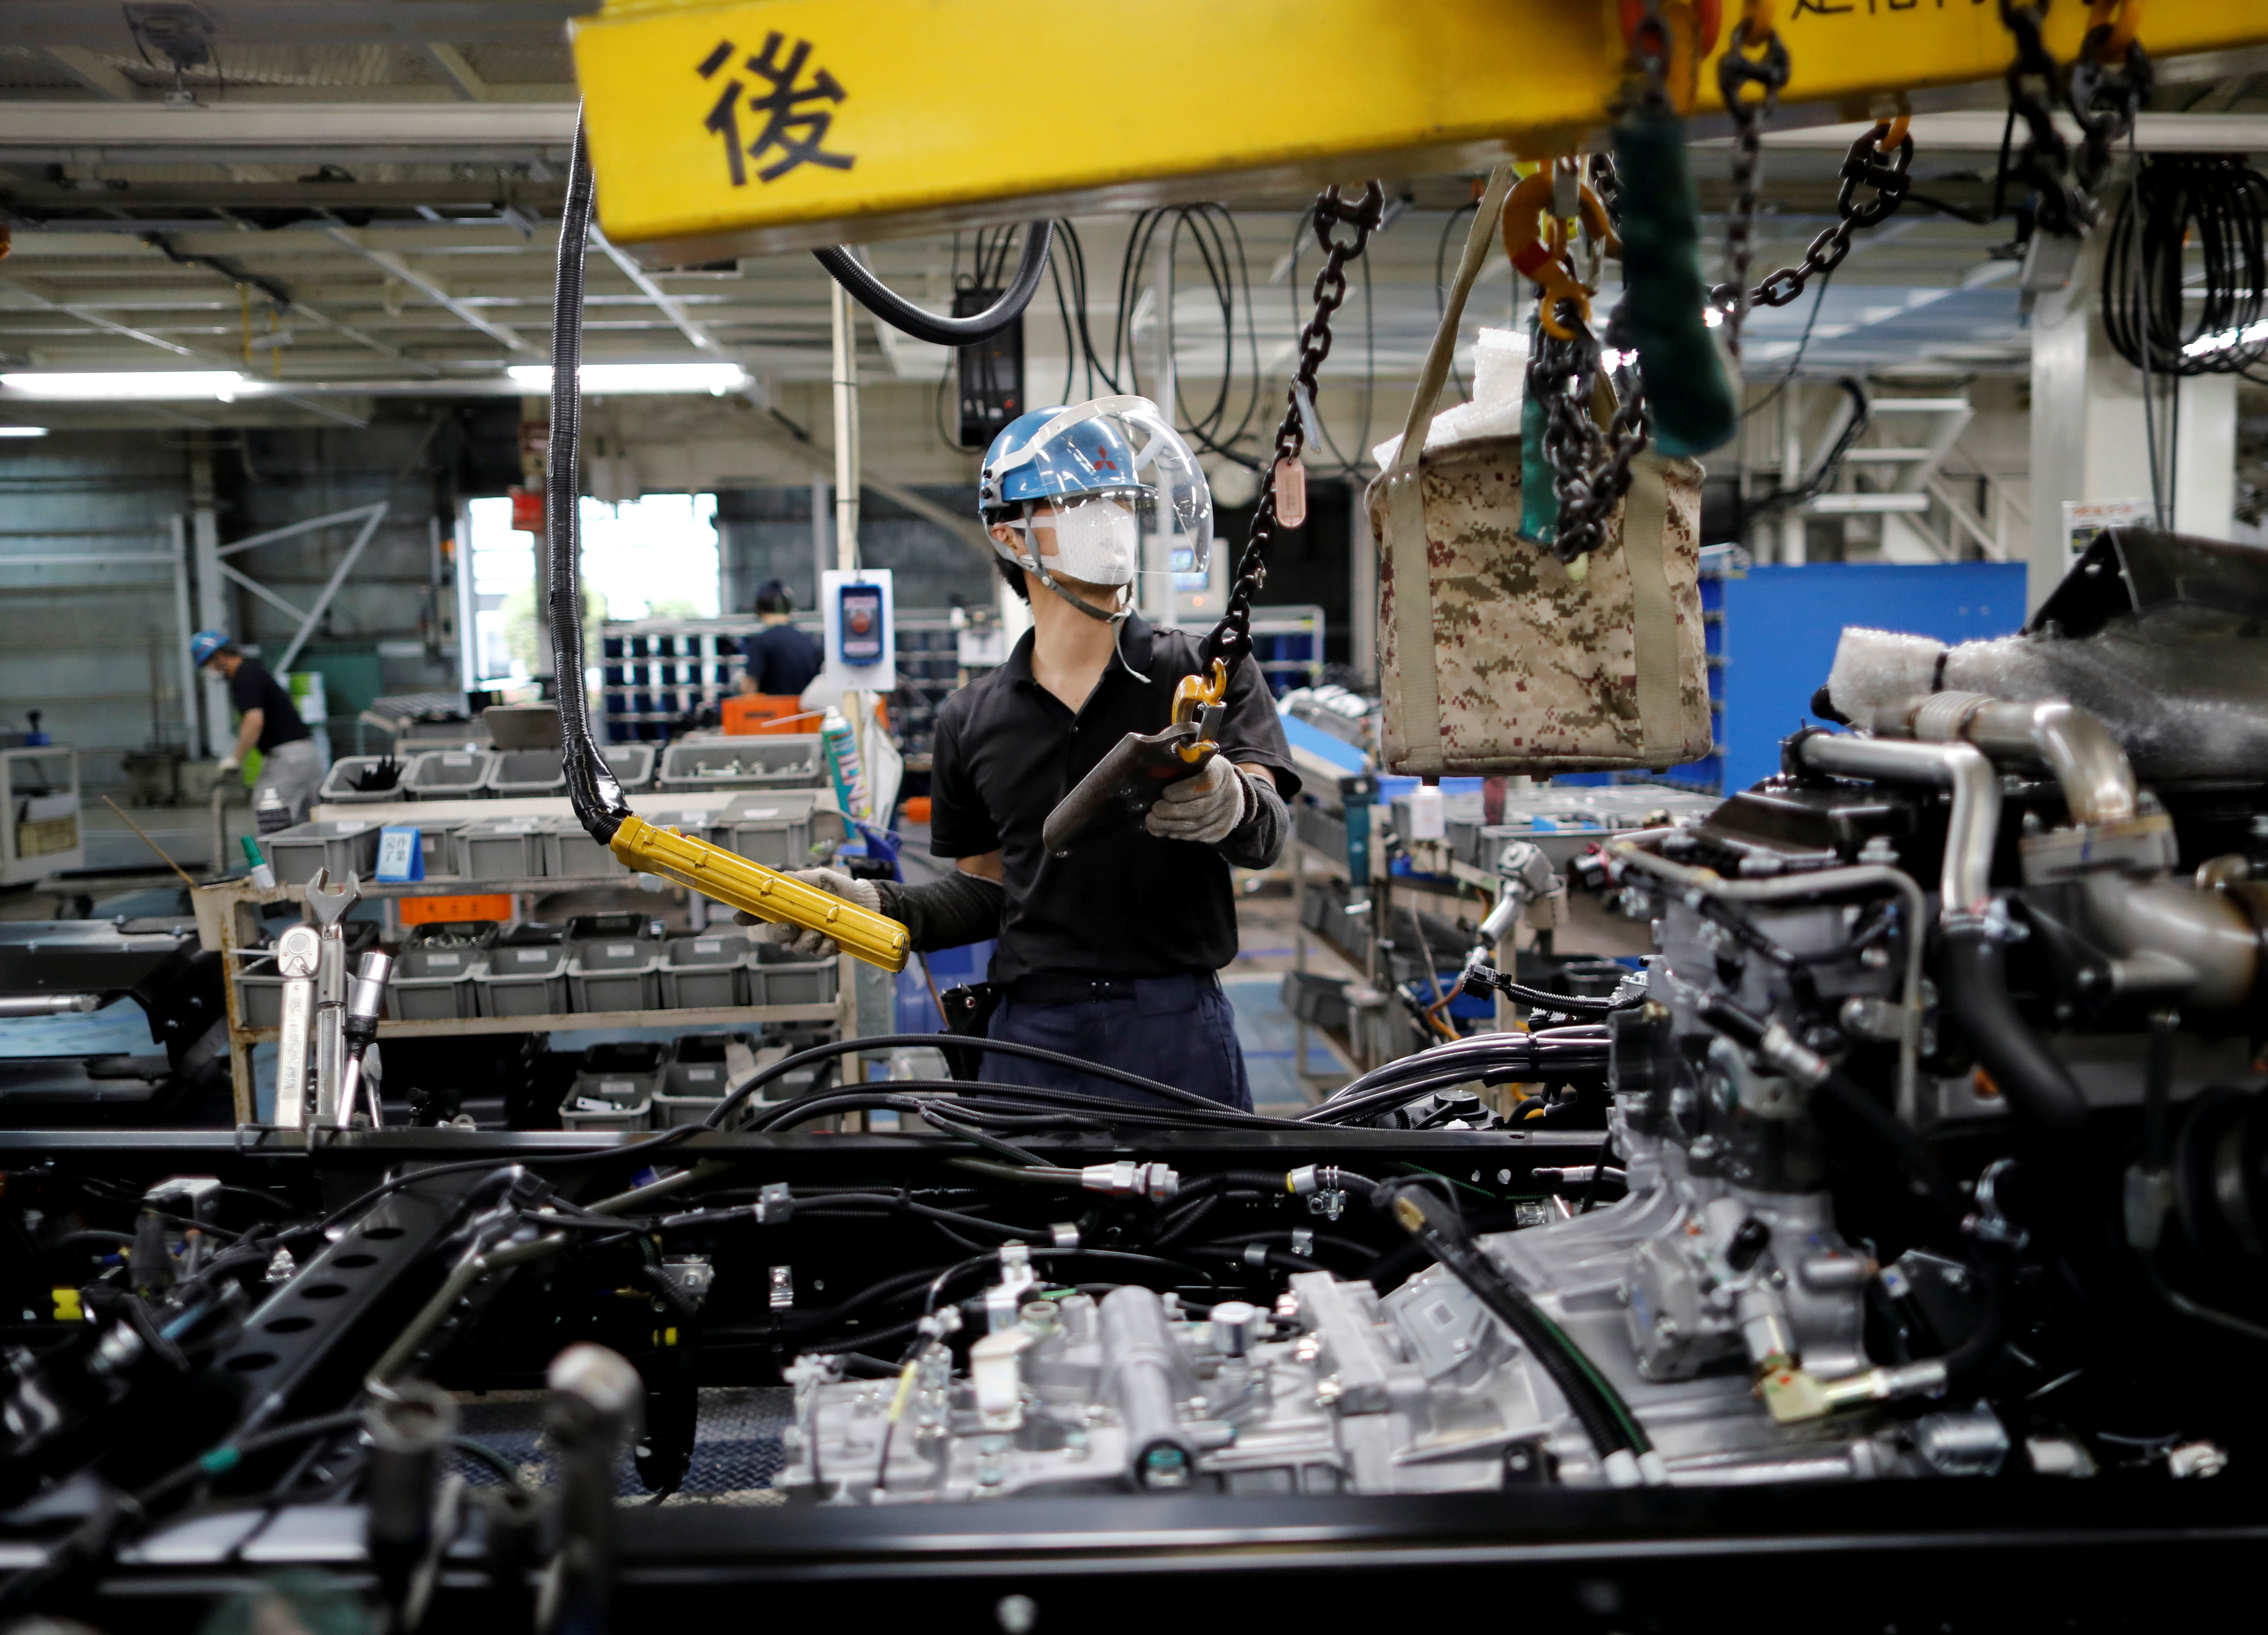 An employee wearing a protective face mask and face guard works on the automobile assembly line at Kawasaki factory of Mitsubishi Fuso Truck and Bus Corp, owned by Germany-based Daimler AG, in Kawasaki, south of Tokyo, Japan May 18, 2020.  REUTERS/Issei Kato/File Photo